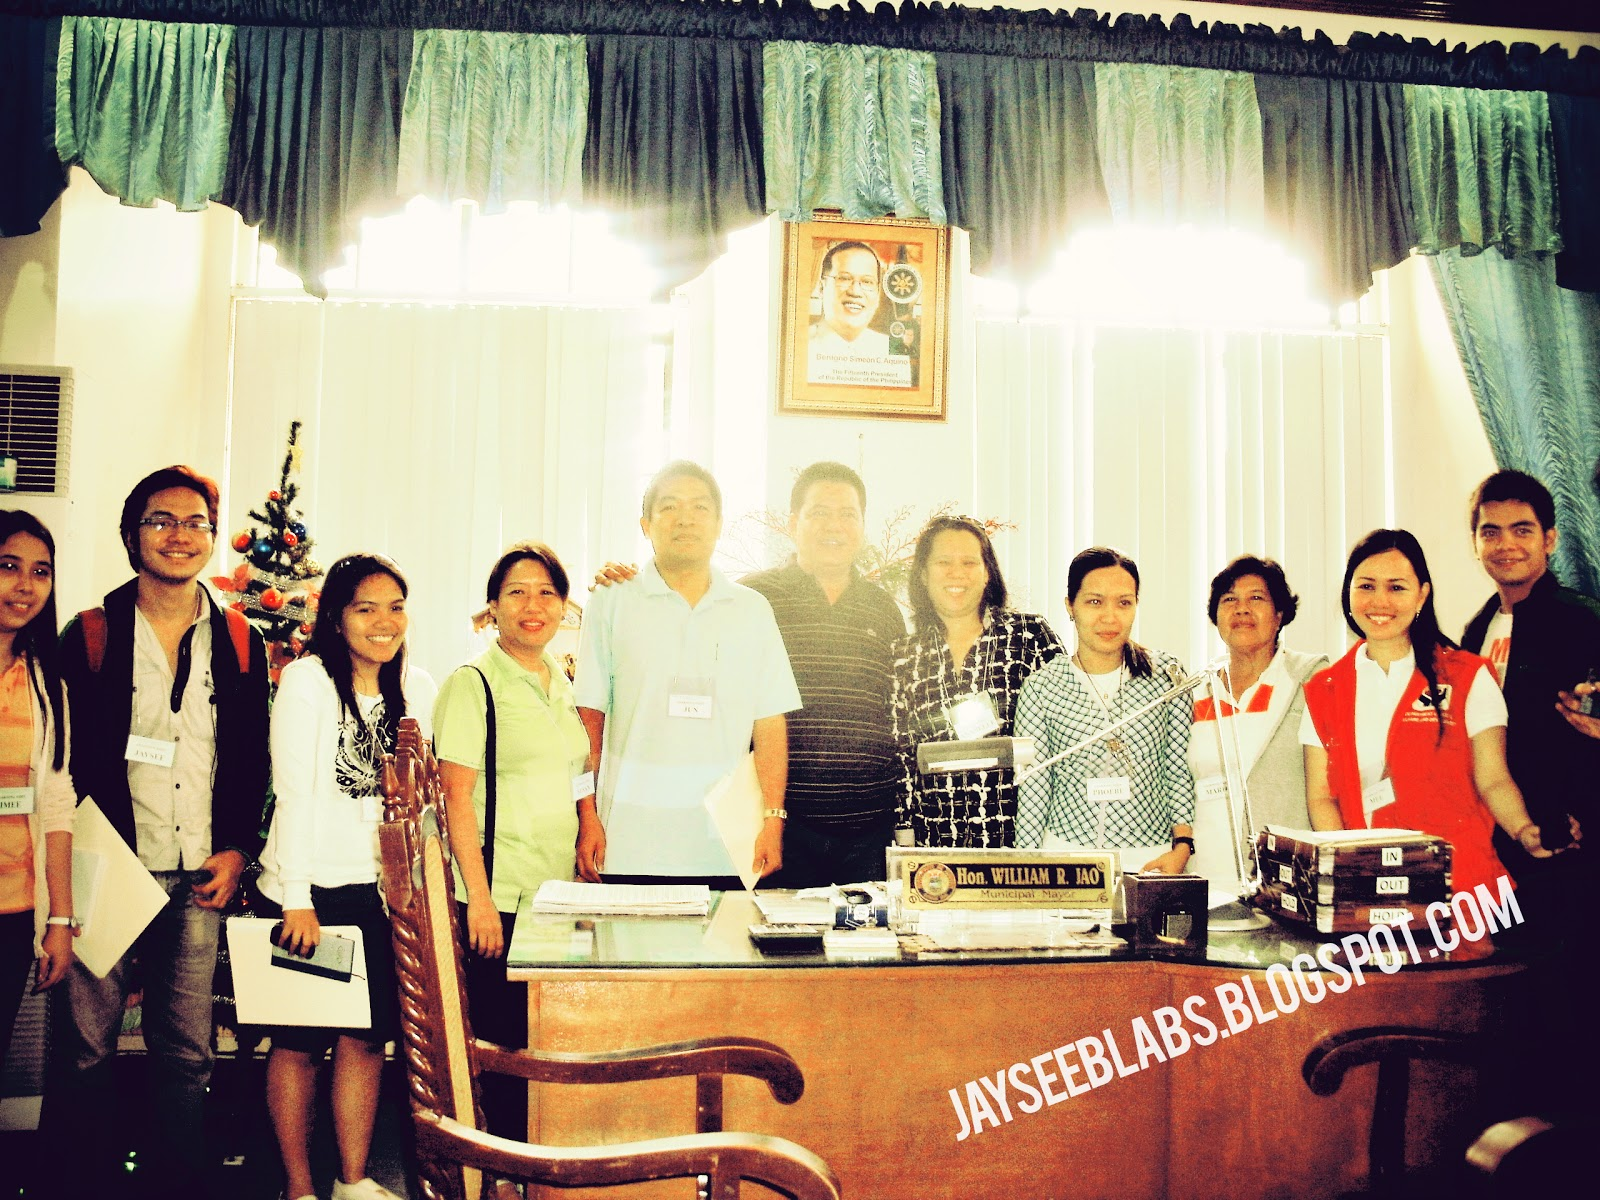 We arrived in Tubigon, Bohol and made a courtesy call to Mayor Allen Ray Z. Piezas.